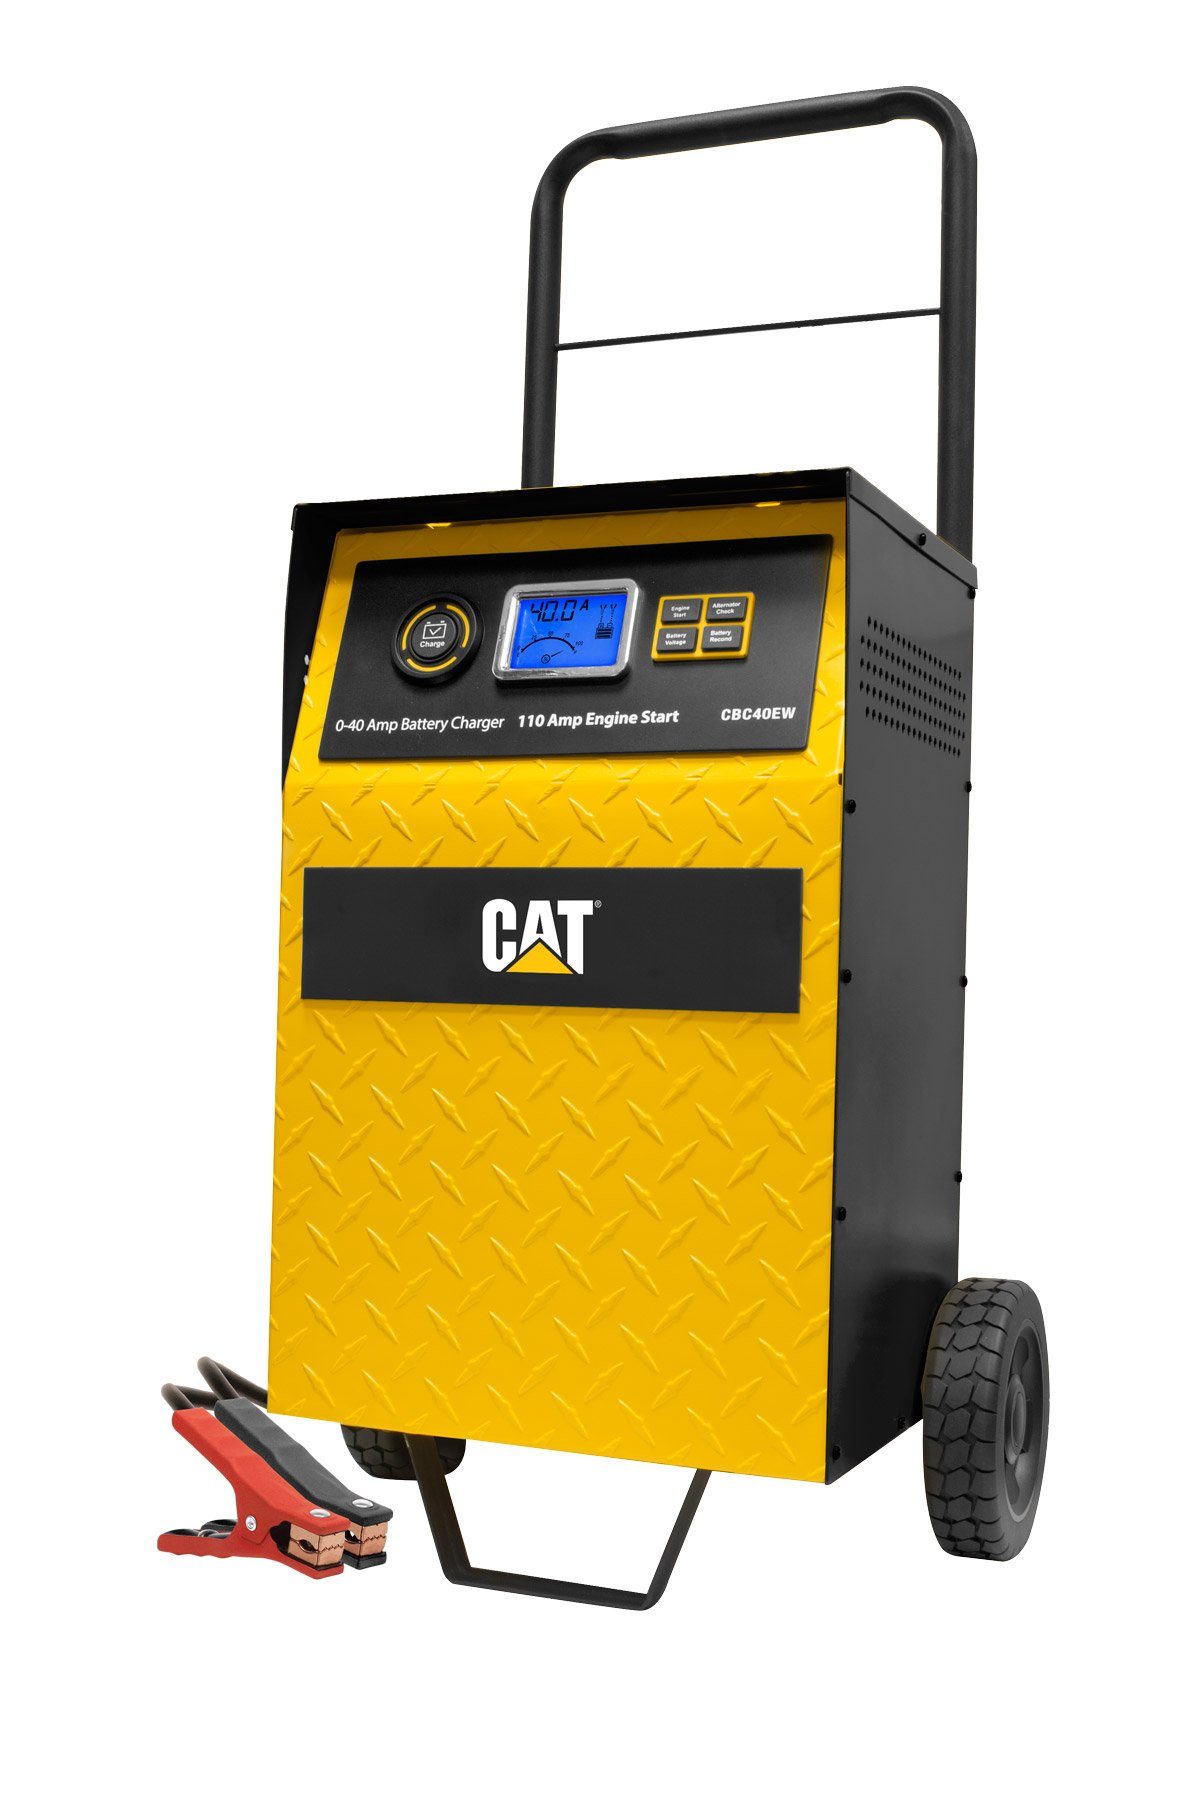 CAT CBC40EW 40 Amp Battery Charger with 110 Amp Engine Start